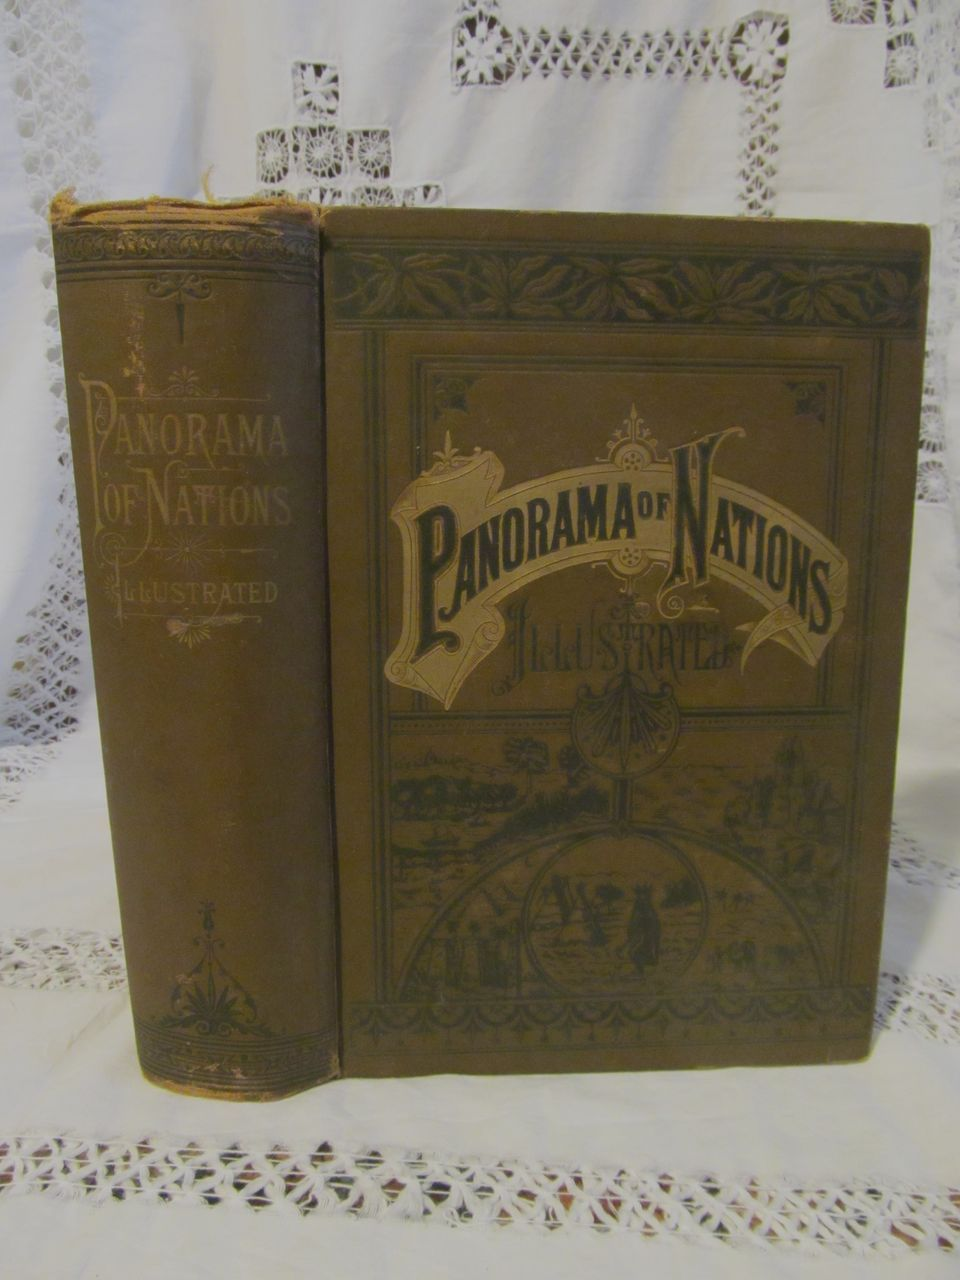 1890 Panorama of Nations, Journeys Among the Family of Men, Illustrated, H G Cutler, LW Yaggy, Star Publishing Company